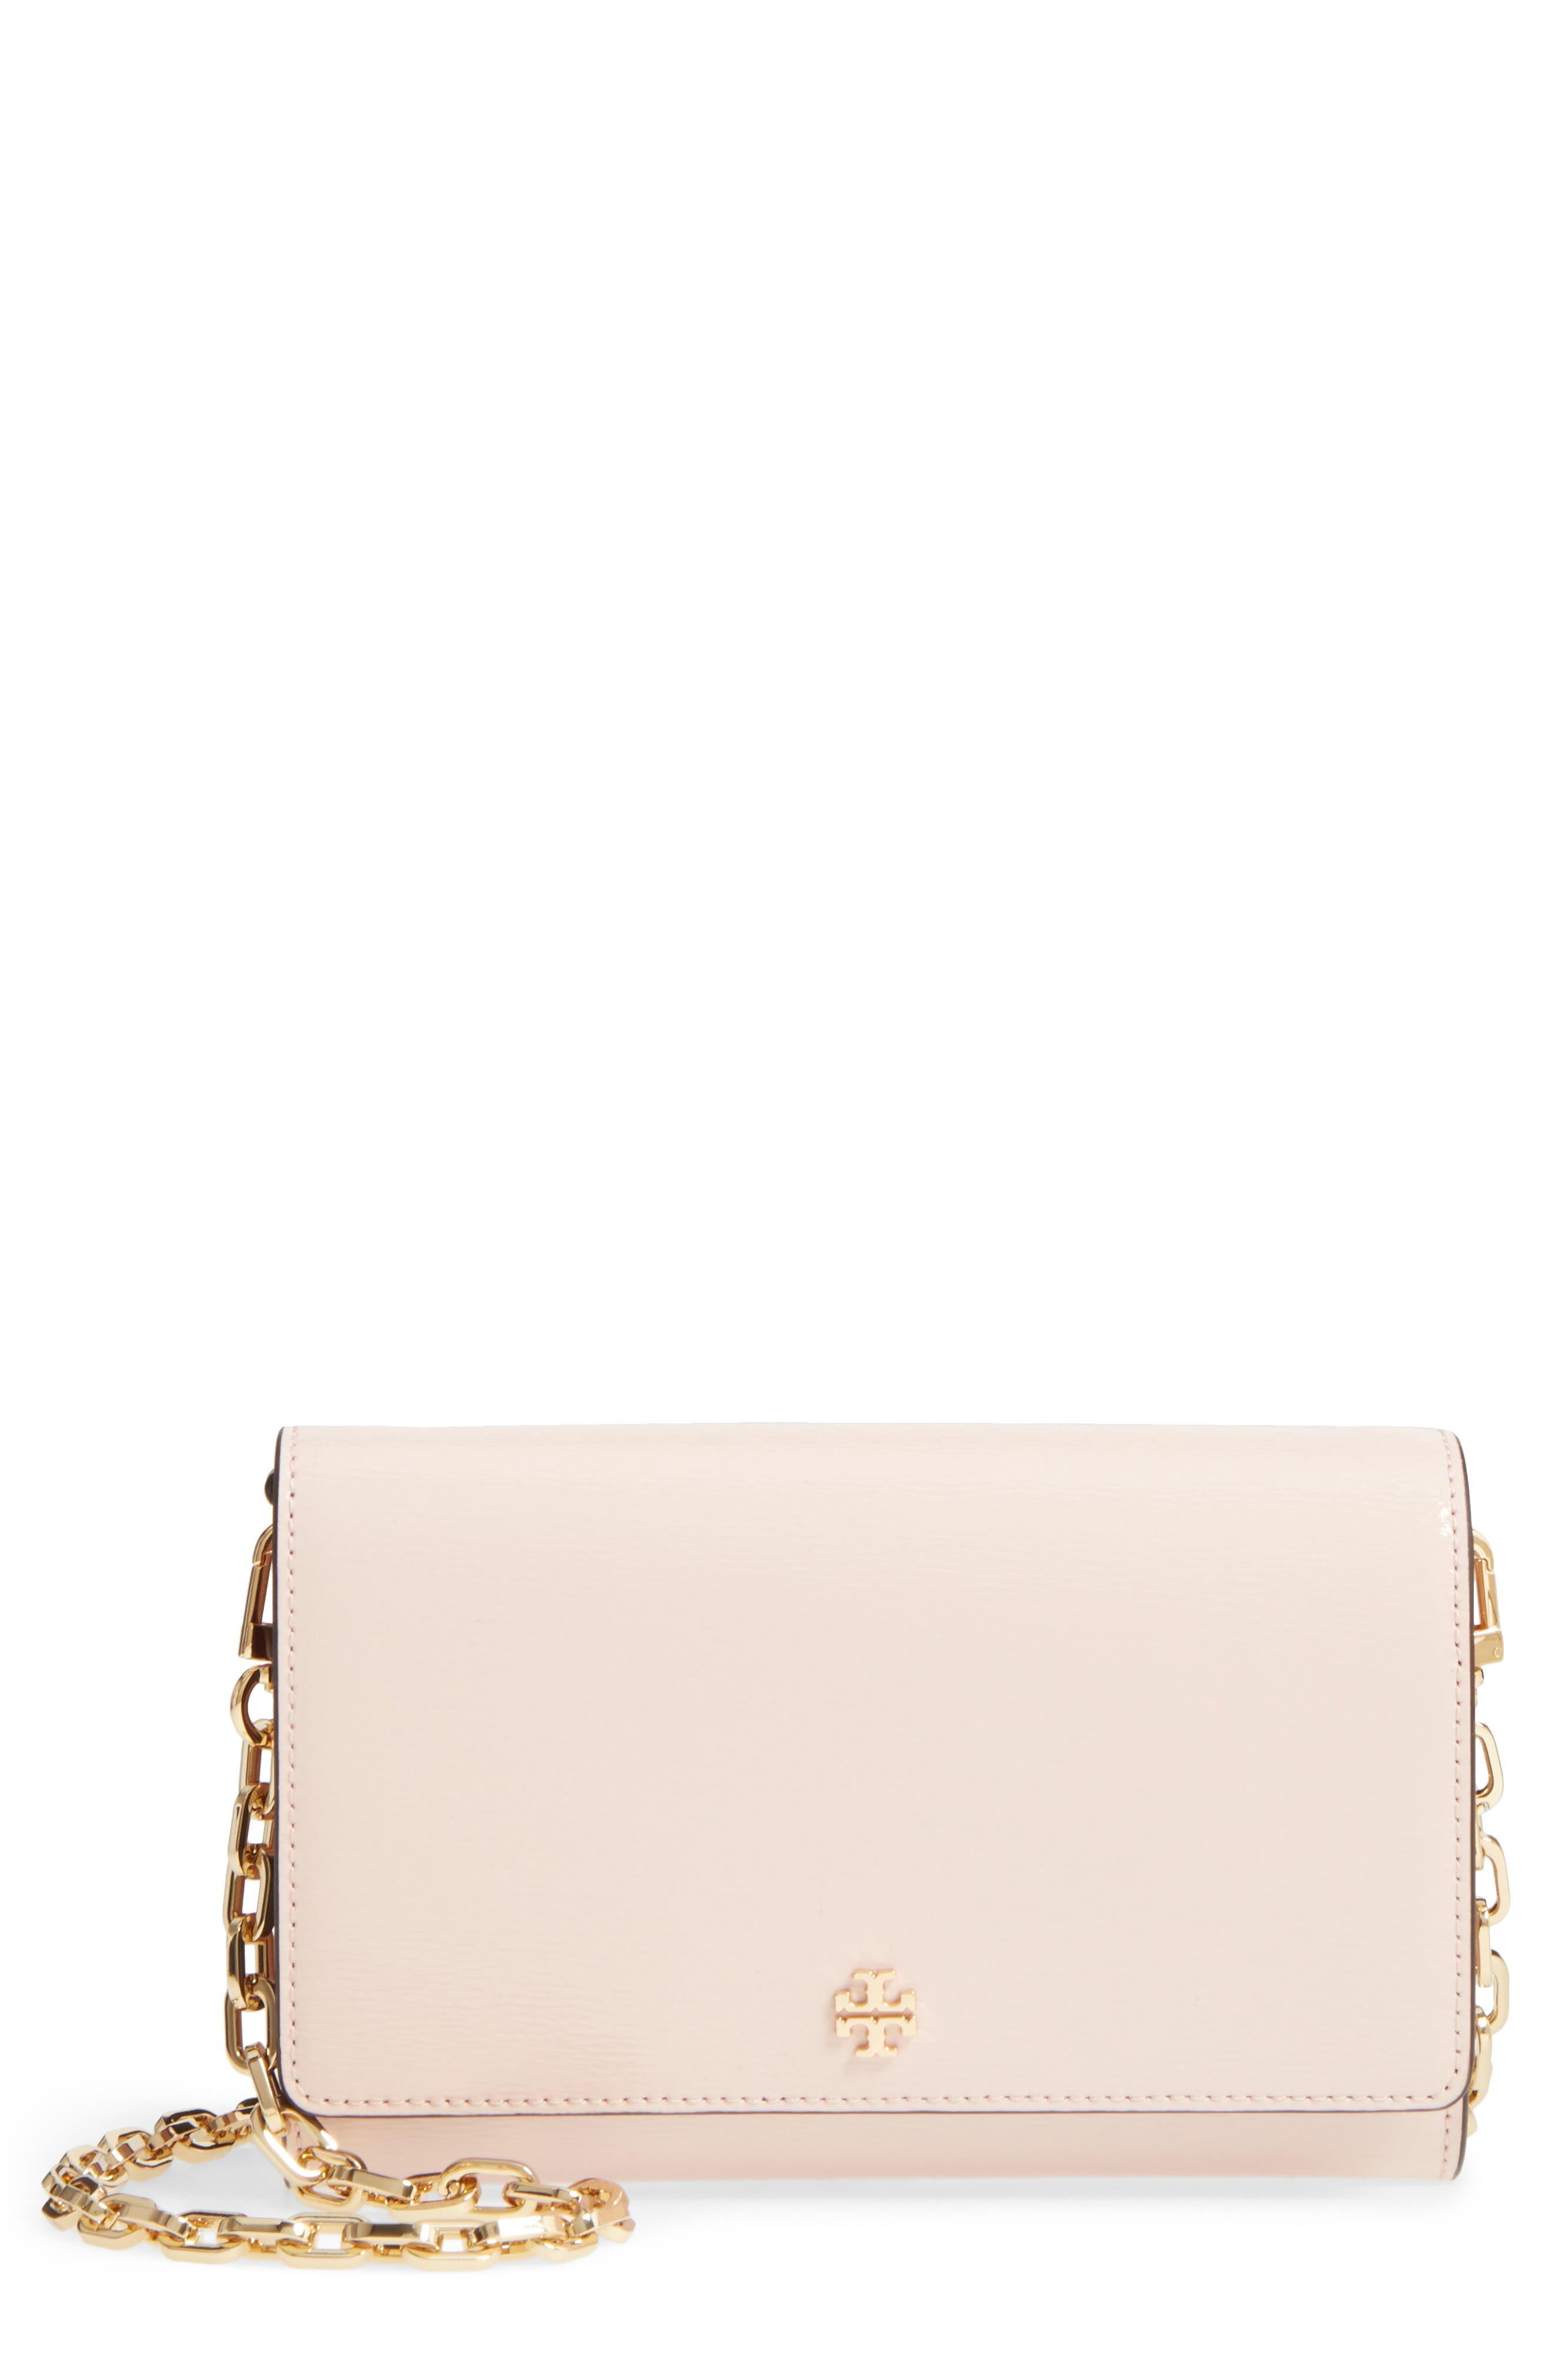 Alternate Image 1 Selected - Tory Burch Robinson Patent Leather Wallet on a Chain